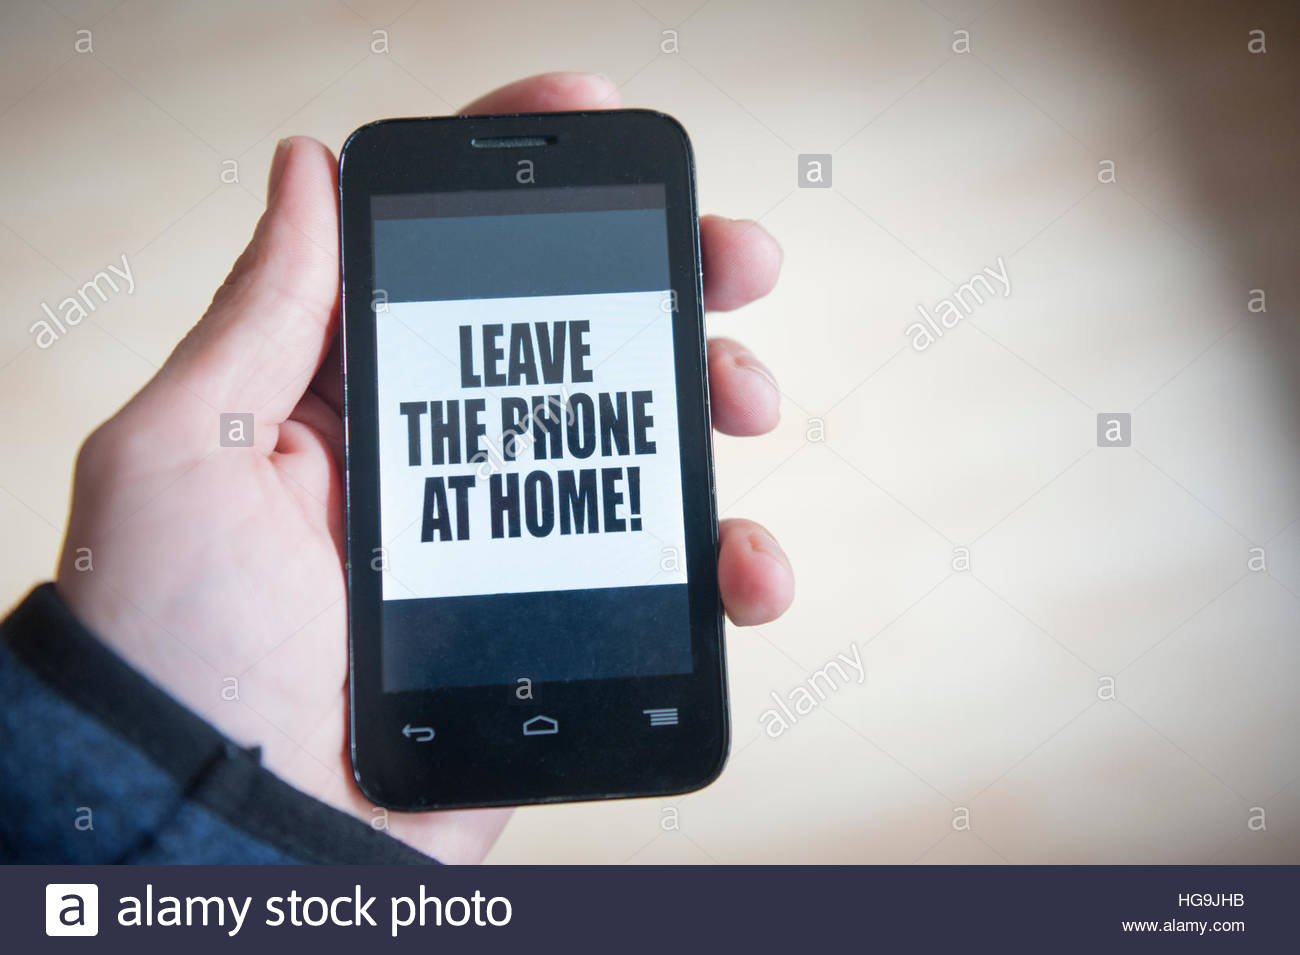 Home communications communications communication by telephone - Concept Mobile Telephone Addiction Leave The Phone At Home